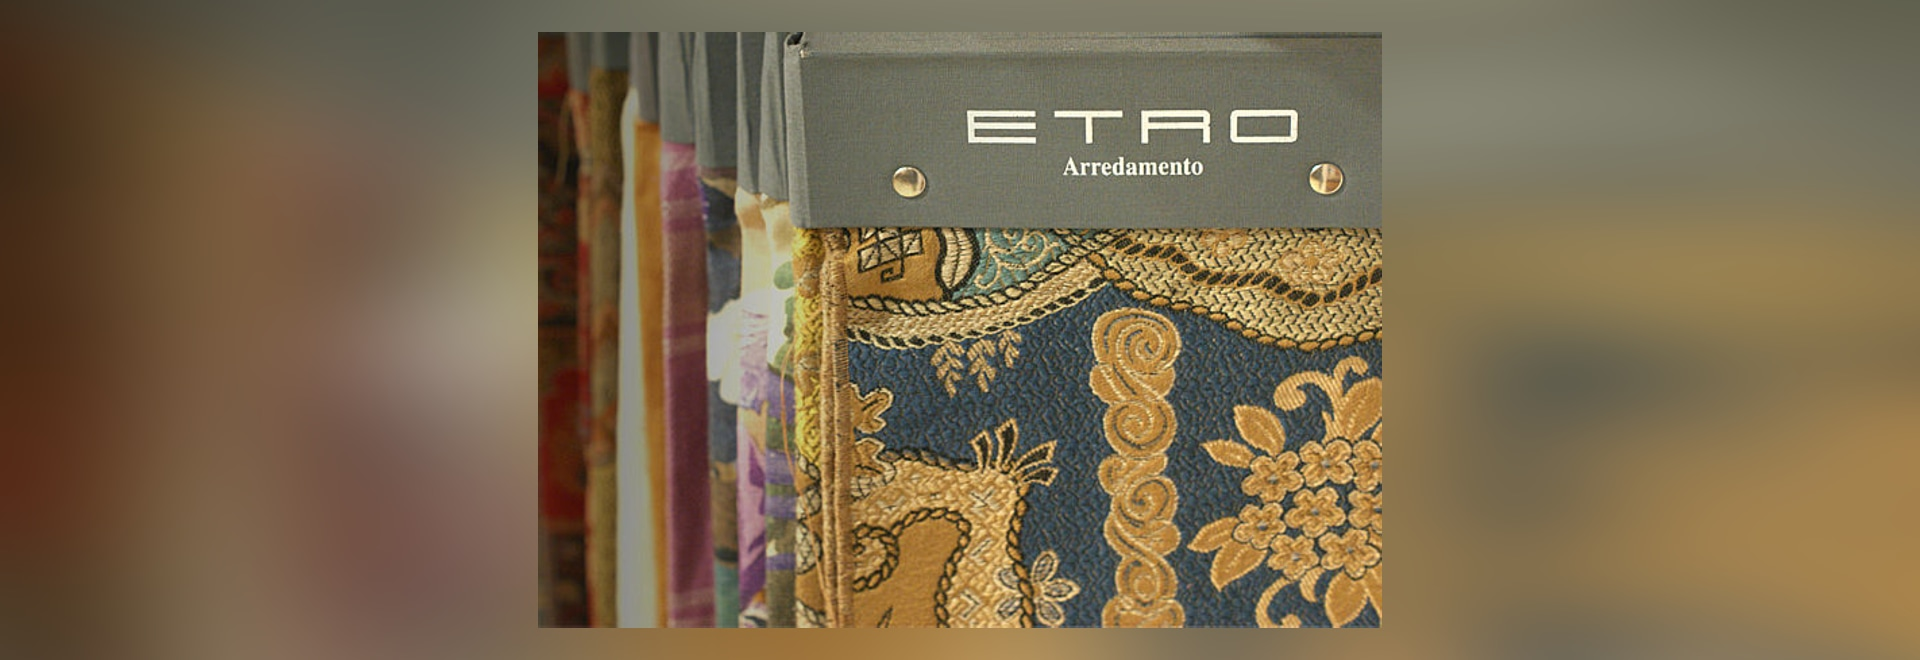 Etro in the new Berto textile collection.